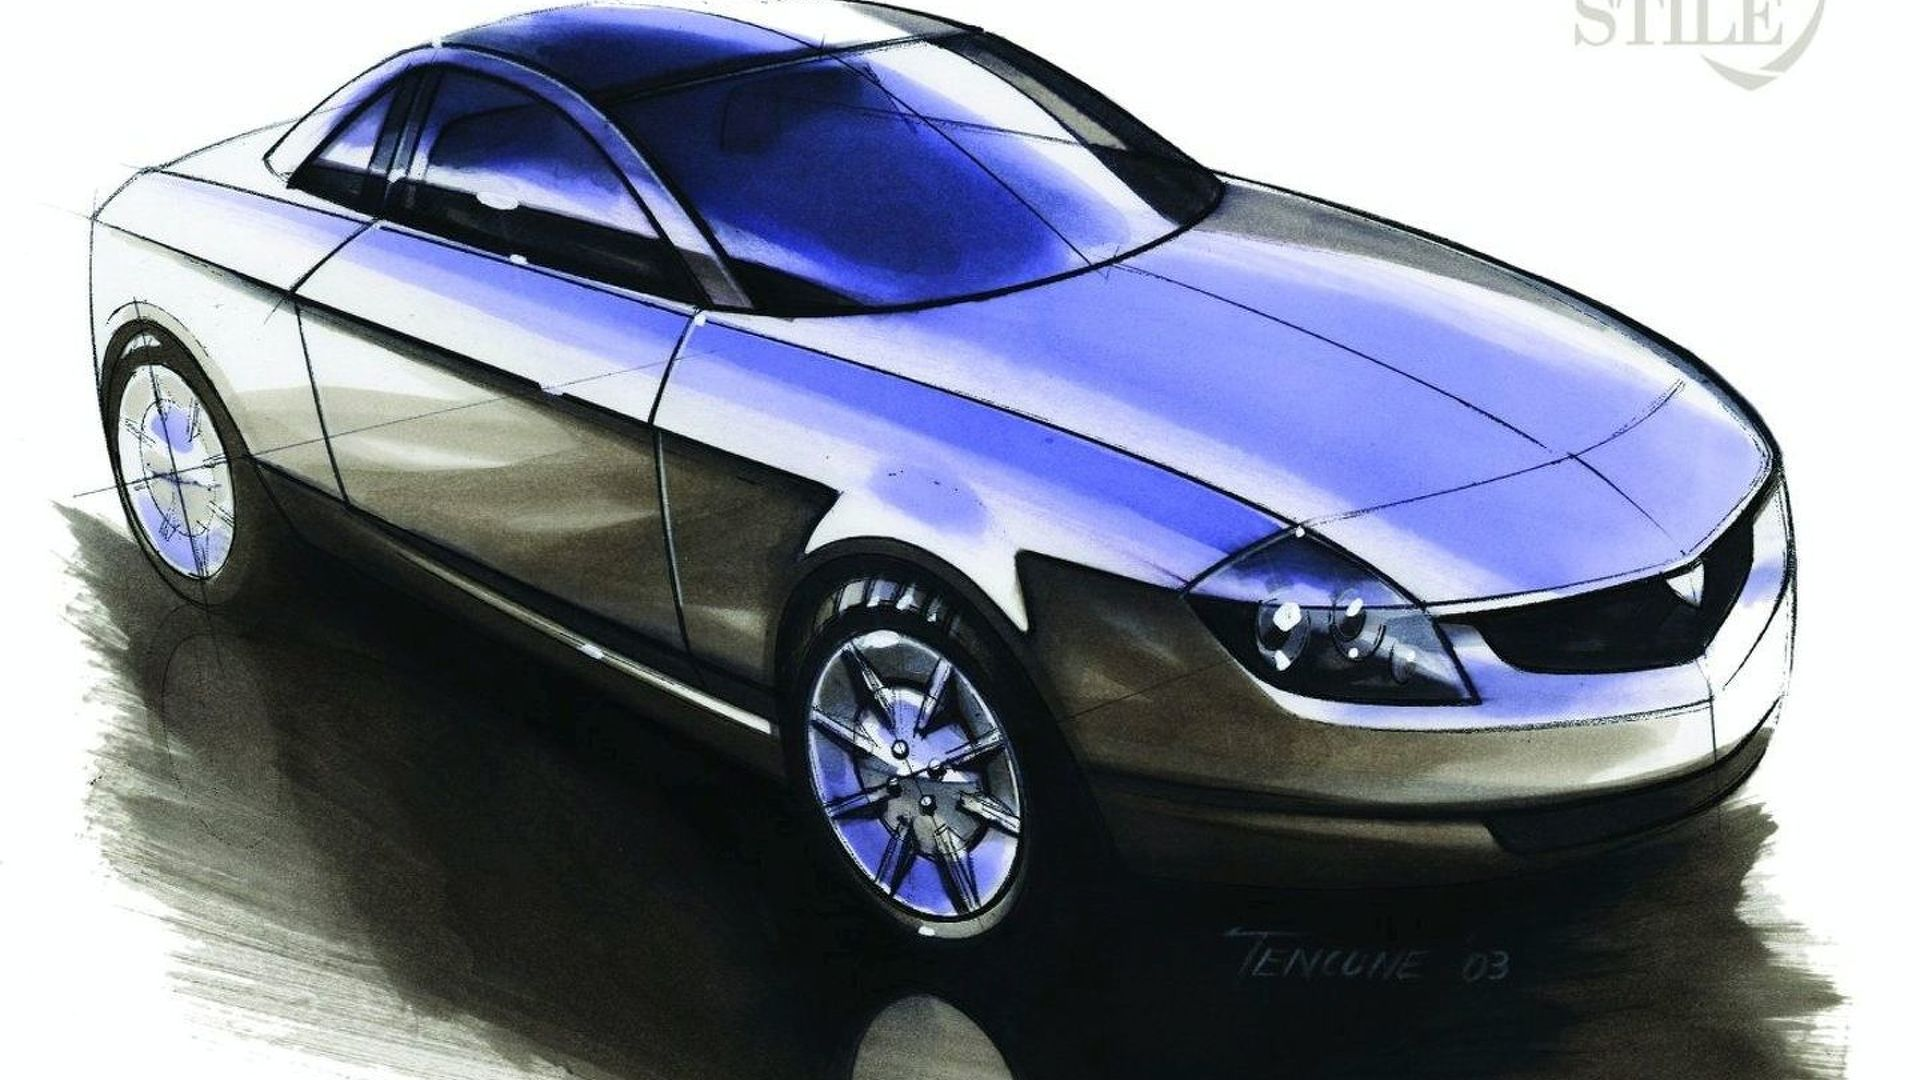 https://icdn-9.motor1.com/images/mgl/WLZ1/s1/2008-22808-lancia-fulvia-coupe-concept-20031.jpg